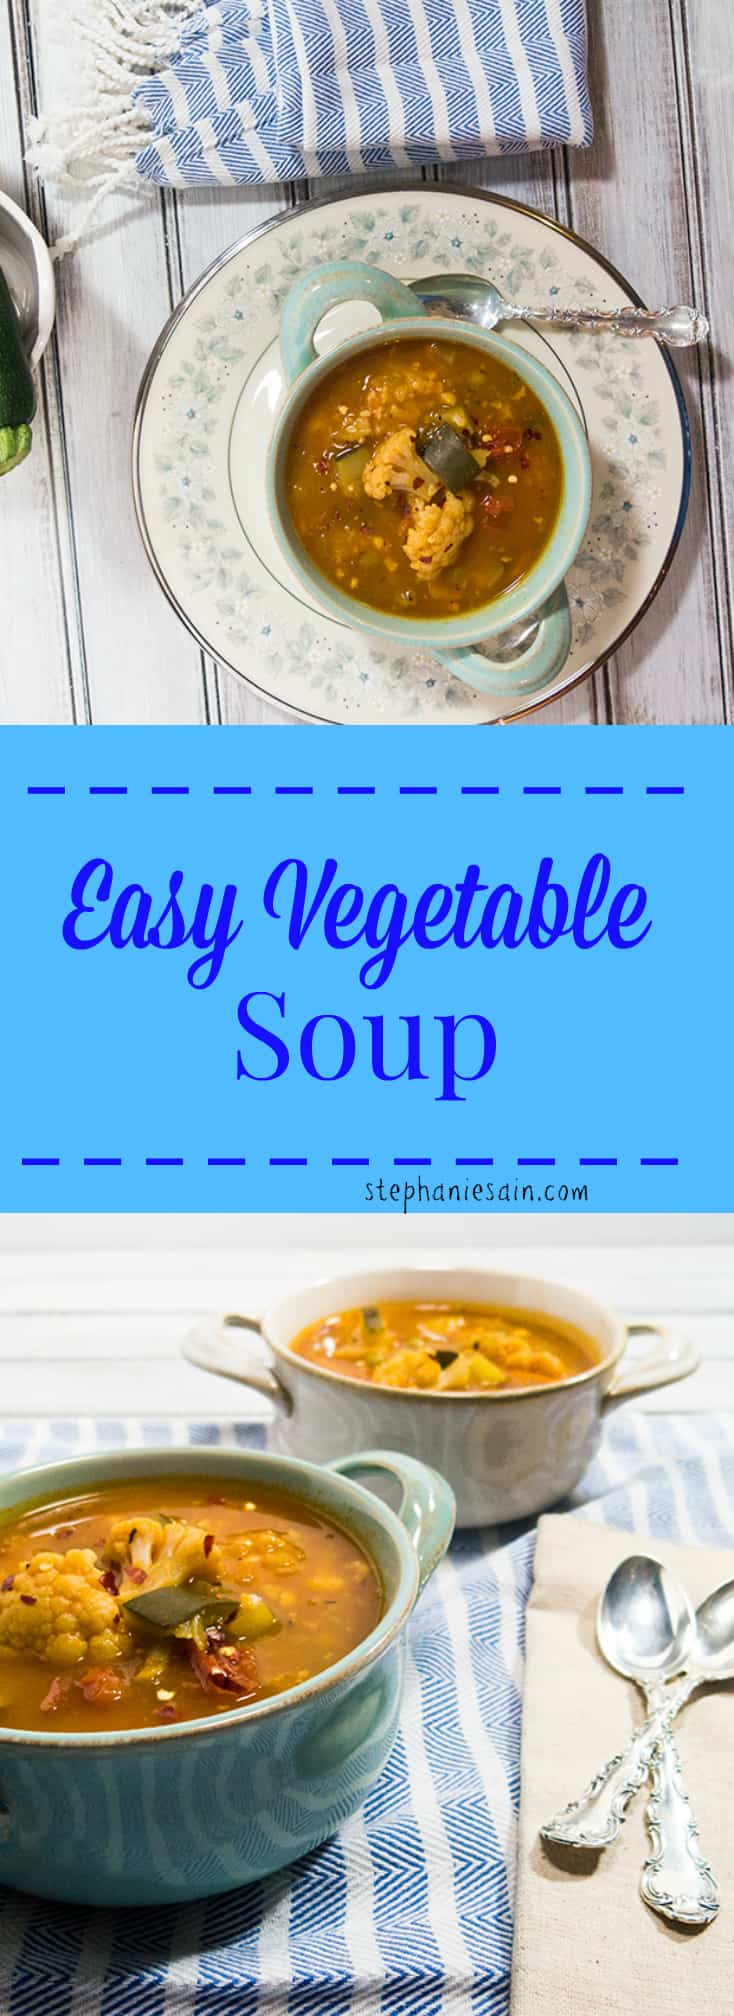 Easy Vegetable Soup is a tasty, hearty bowl of soup that is perfect for anytime. Great served as a meal with salad and GF bread sticks. Vegan and Gluten Free.